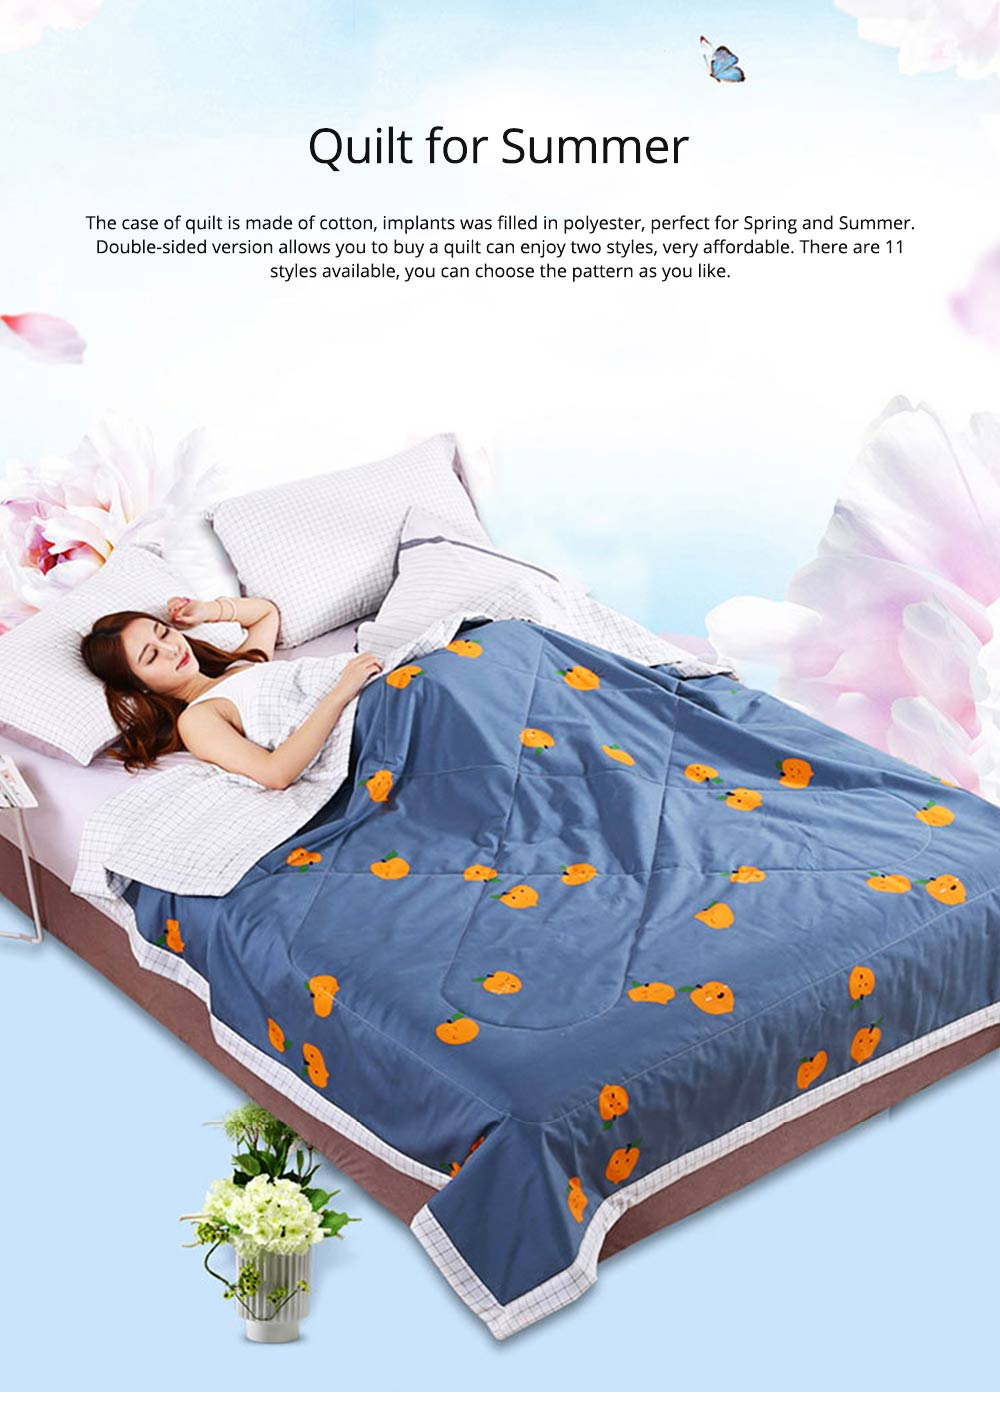 Washable Quilt for Summer Breathable Air Conditioning Quilt, Cotton Printed Quilt for Two Person 0